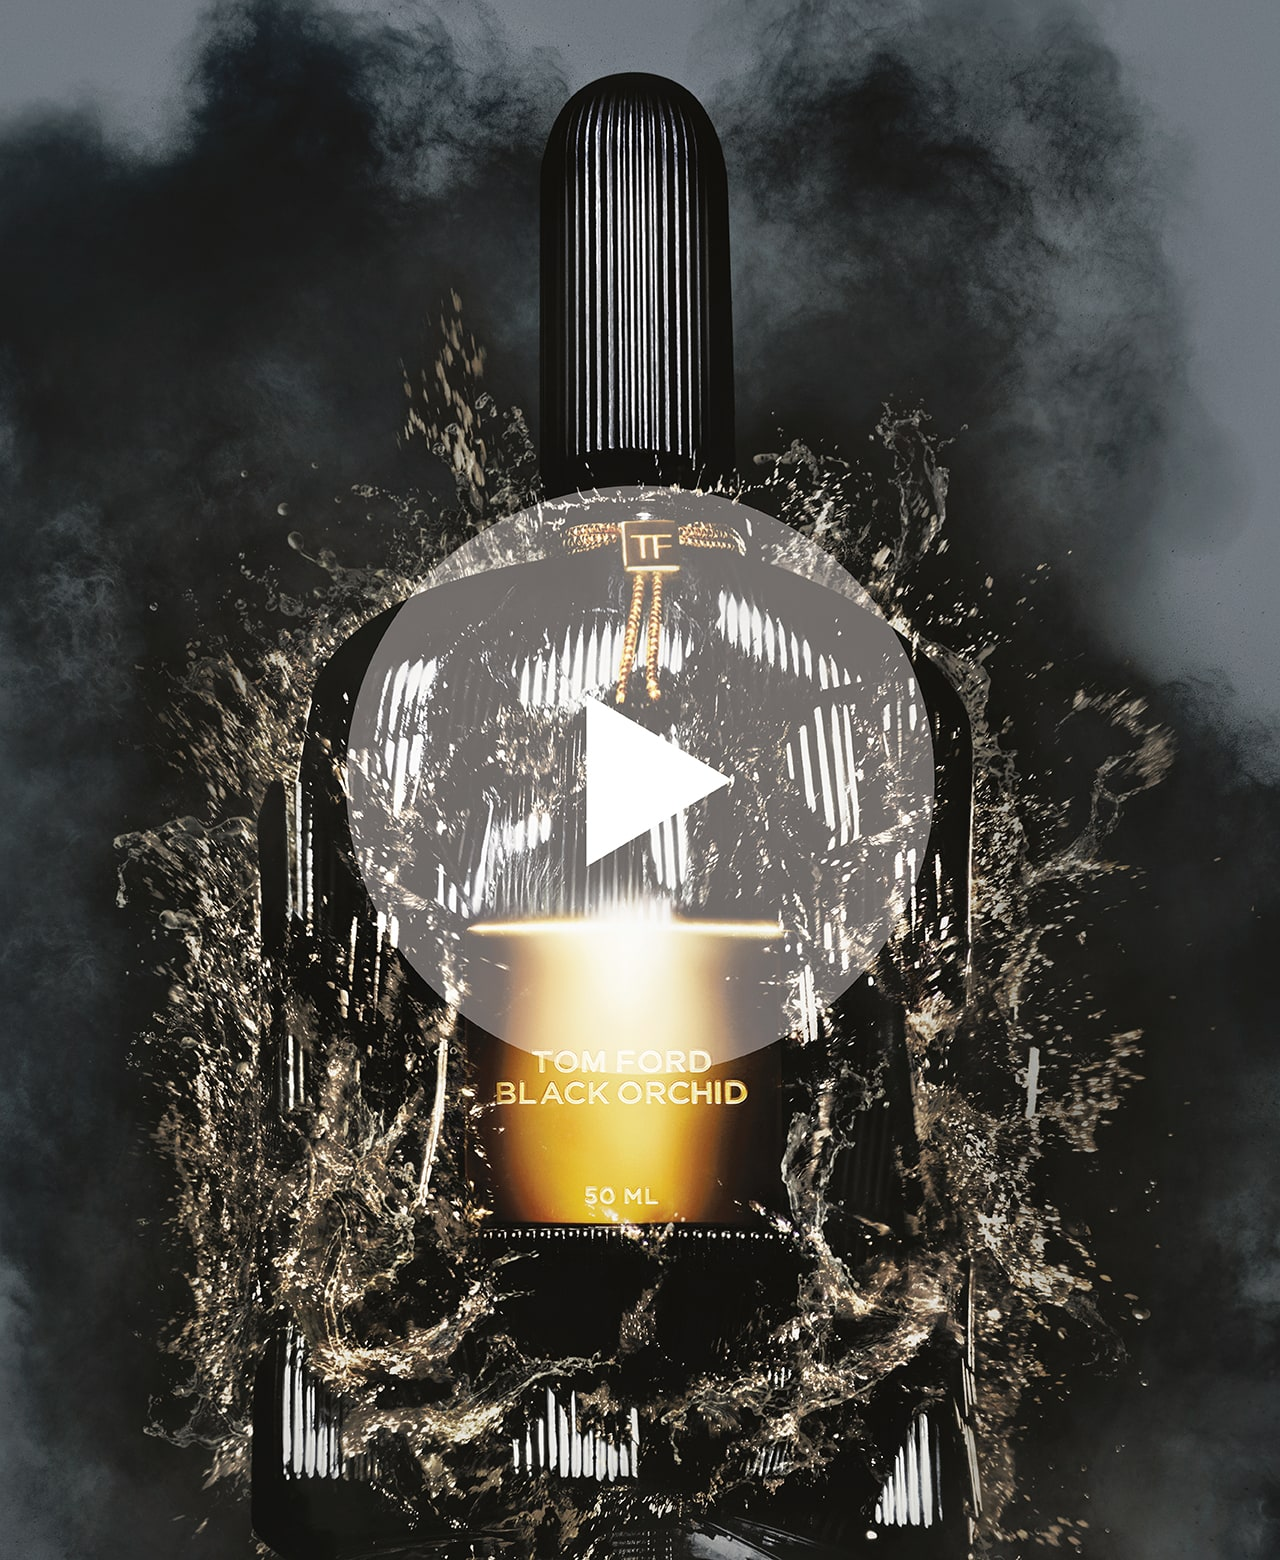 Tom Ford Black Orchid Video